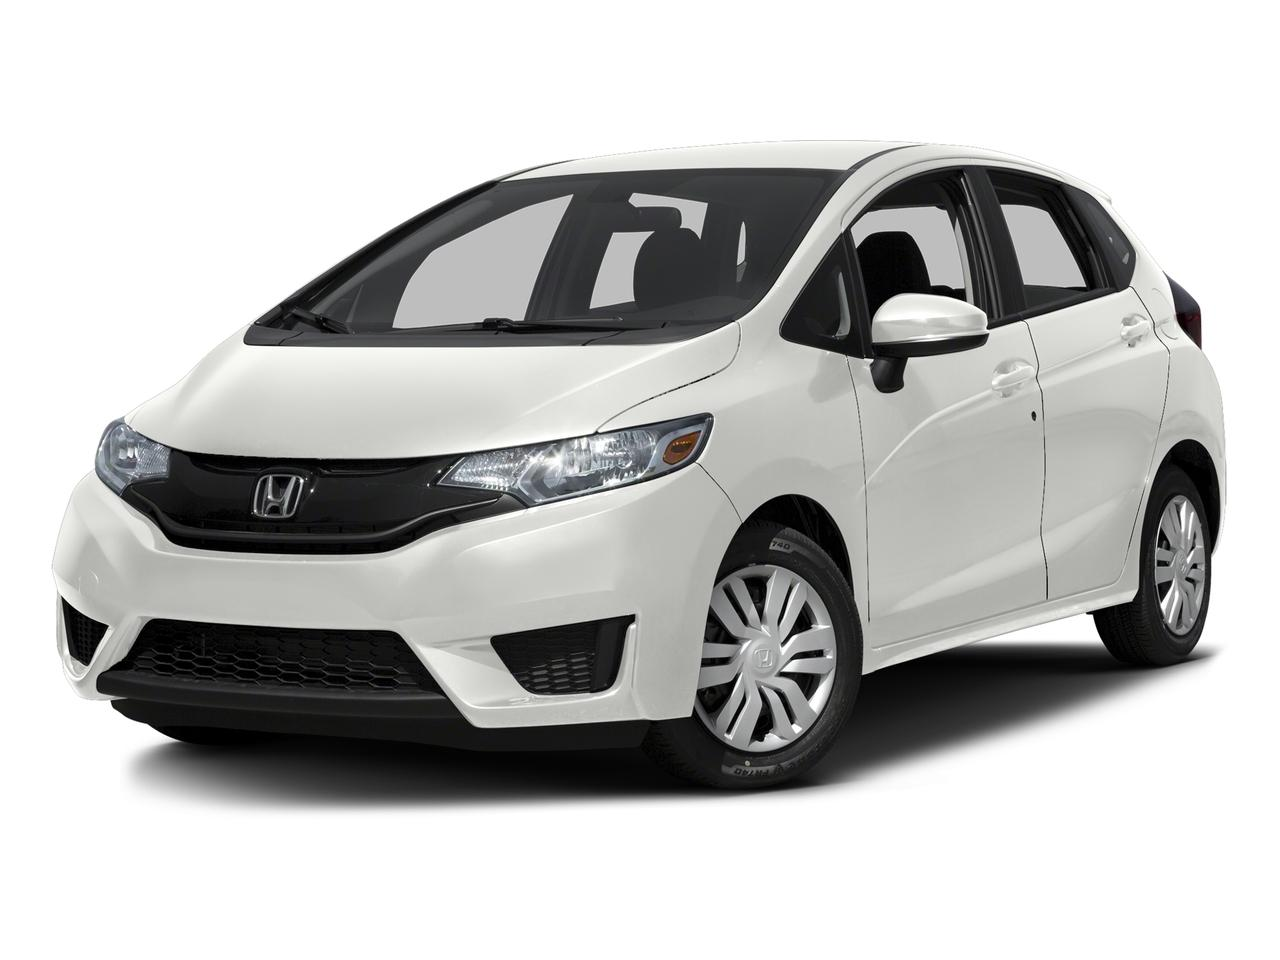 2016 Honda Fit Vehicle Photo in Rockville, MD 20852